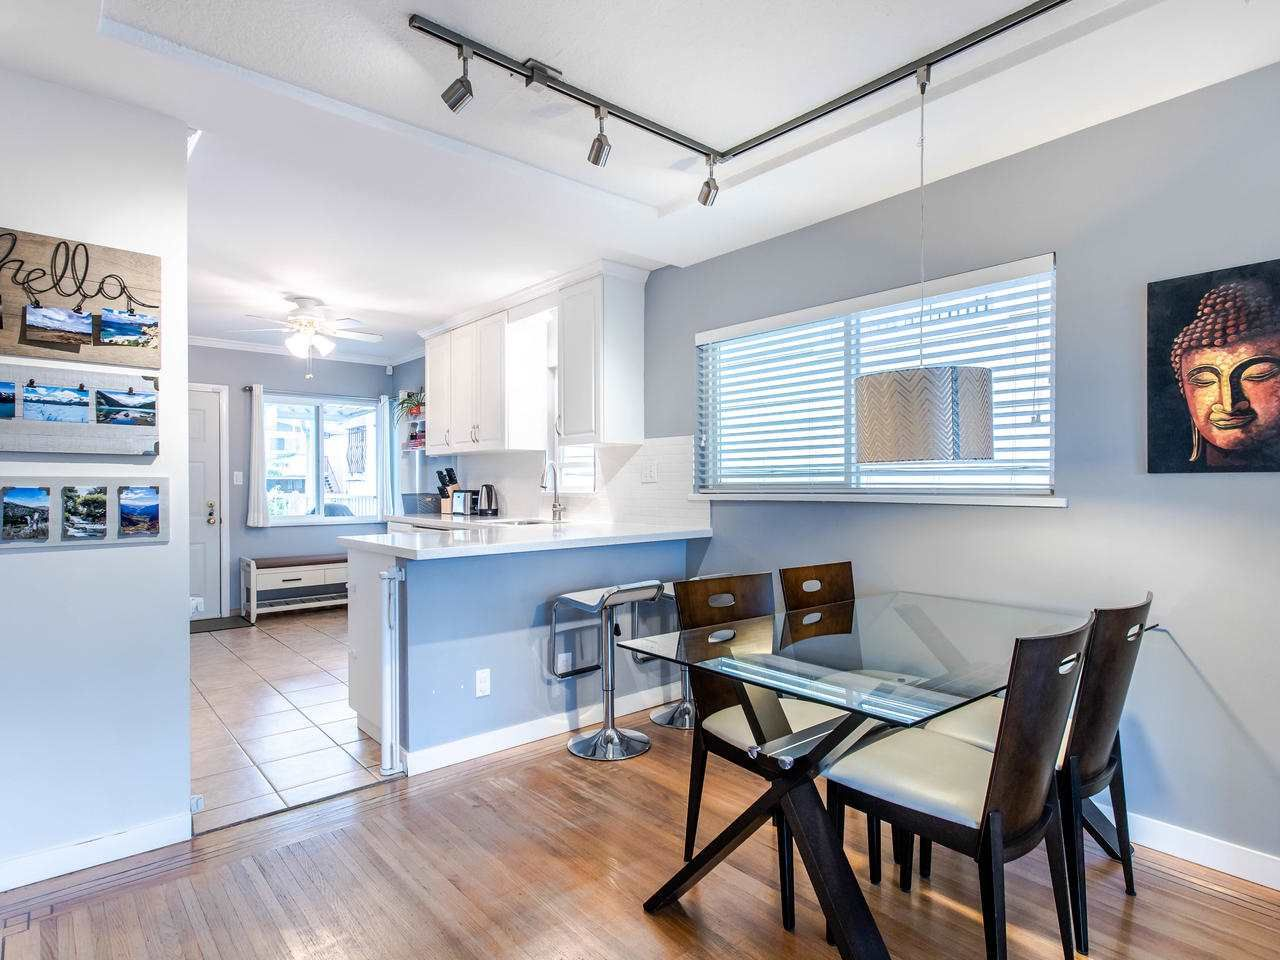 Photo 5: Photos: 4653 UNION STREET in Burnaby: Capitol Hill BN House for sale (Burnaby North)  : MLS®# R2493161